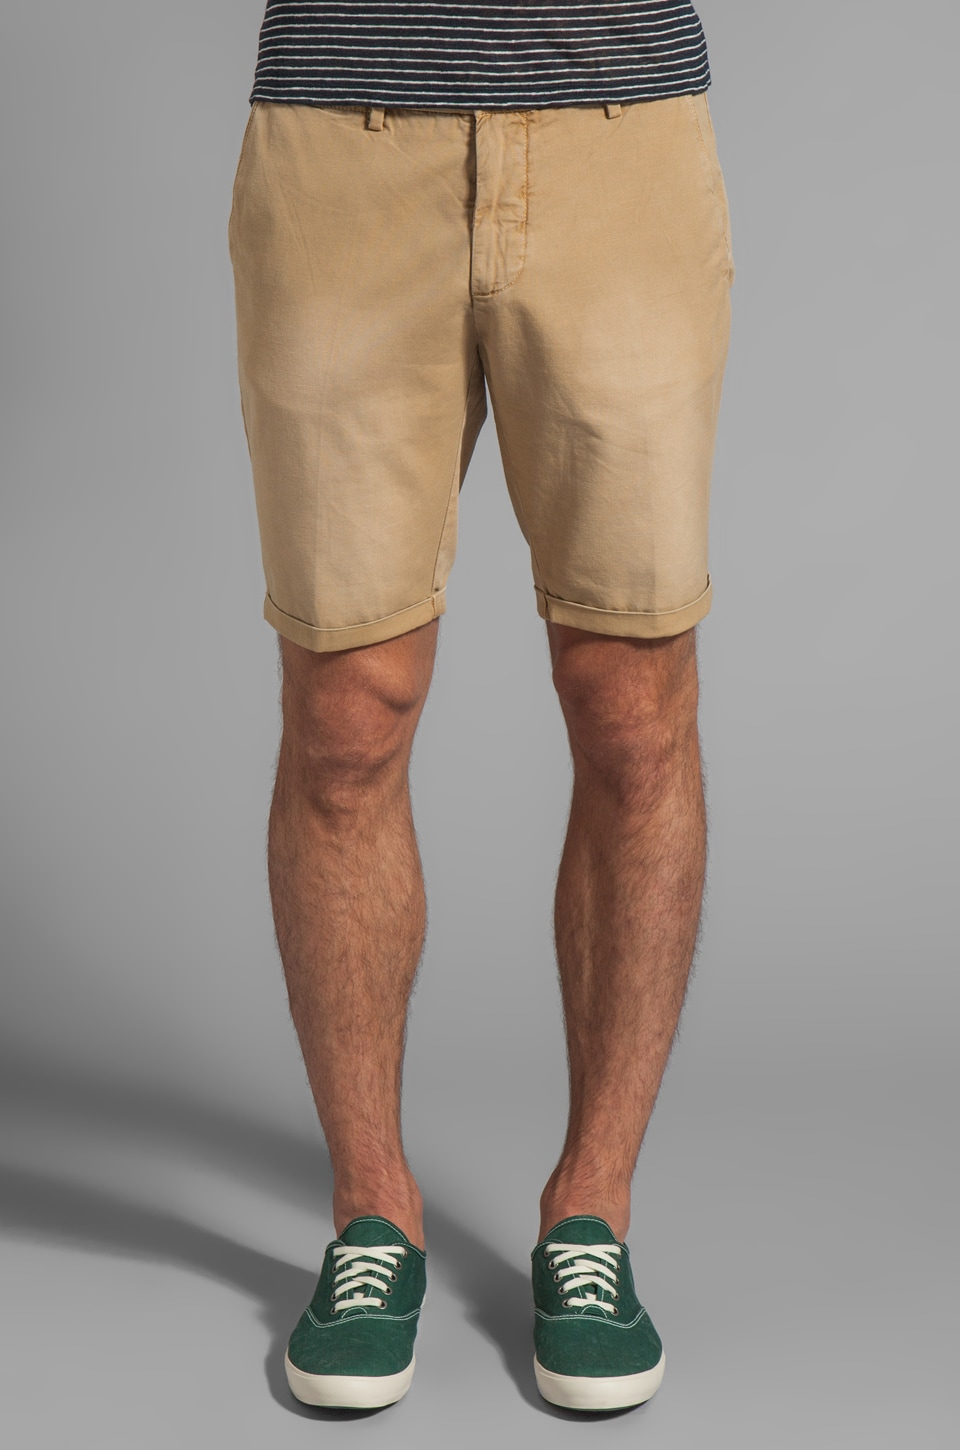 GANT Rugger Canvas Short in Biscuit